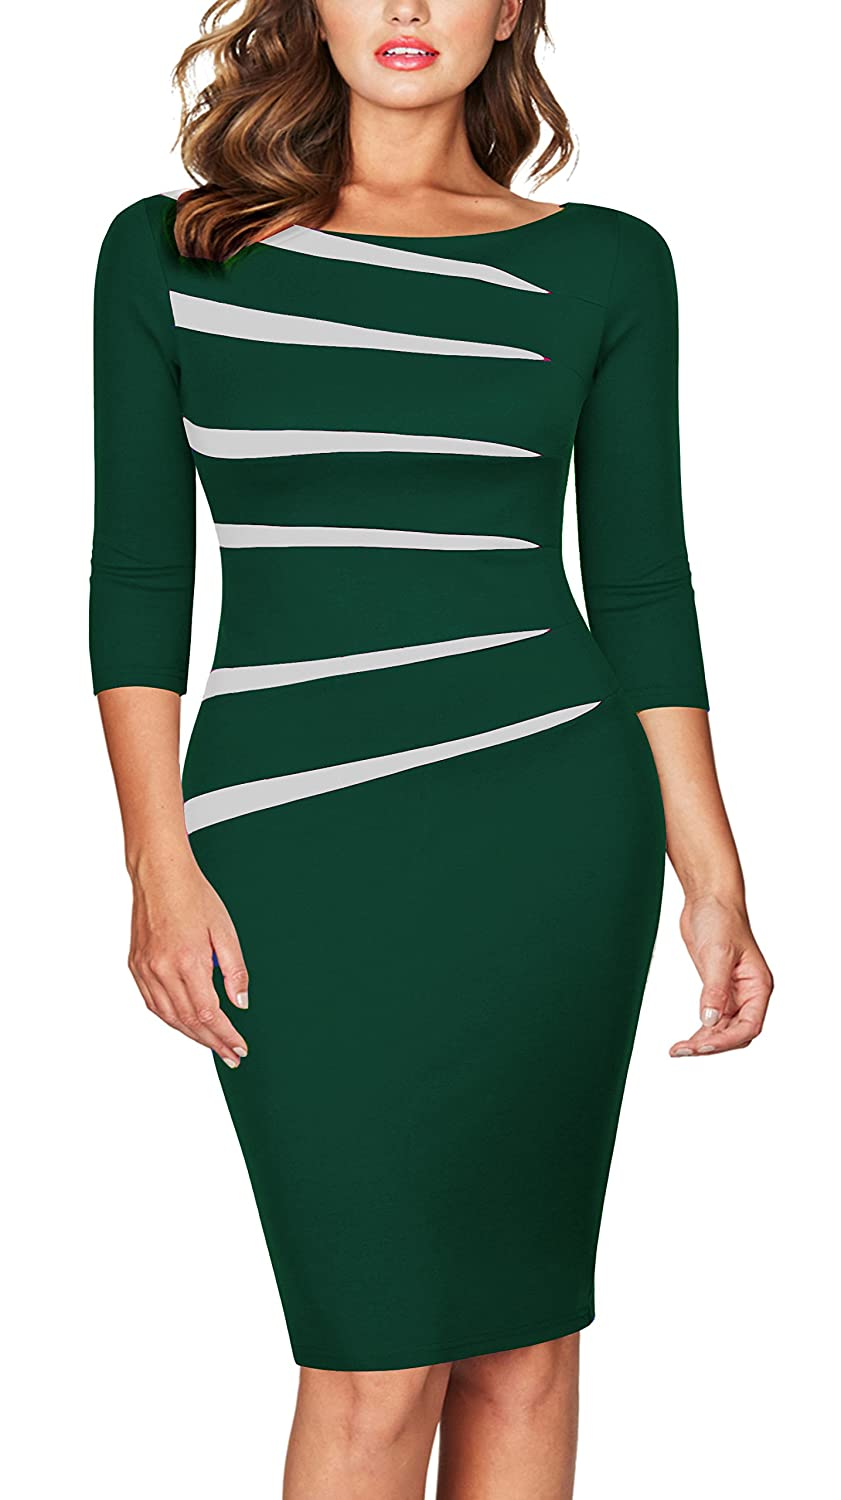 FORTRIC Women Slim Stitching Bodycon Business Wear to Work Party Pencil Dress FORT106